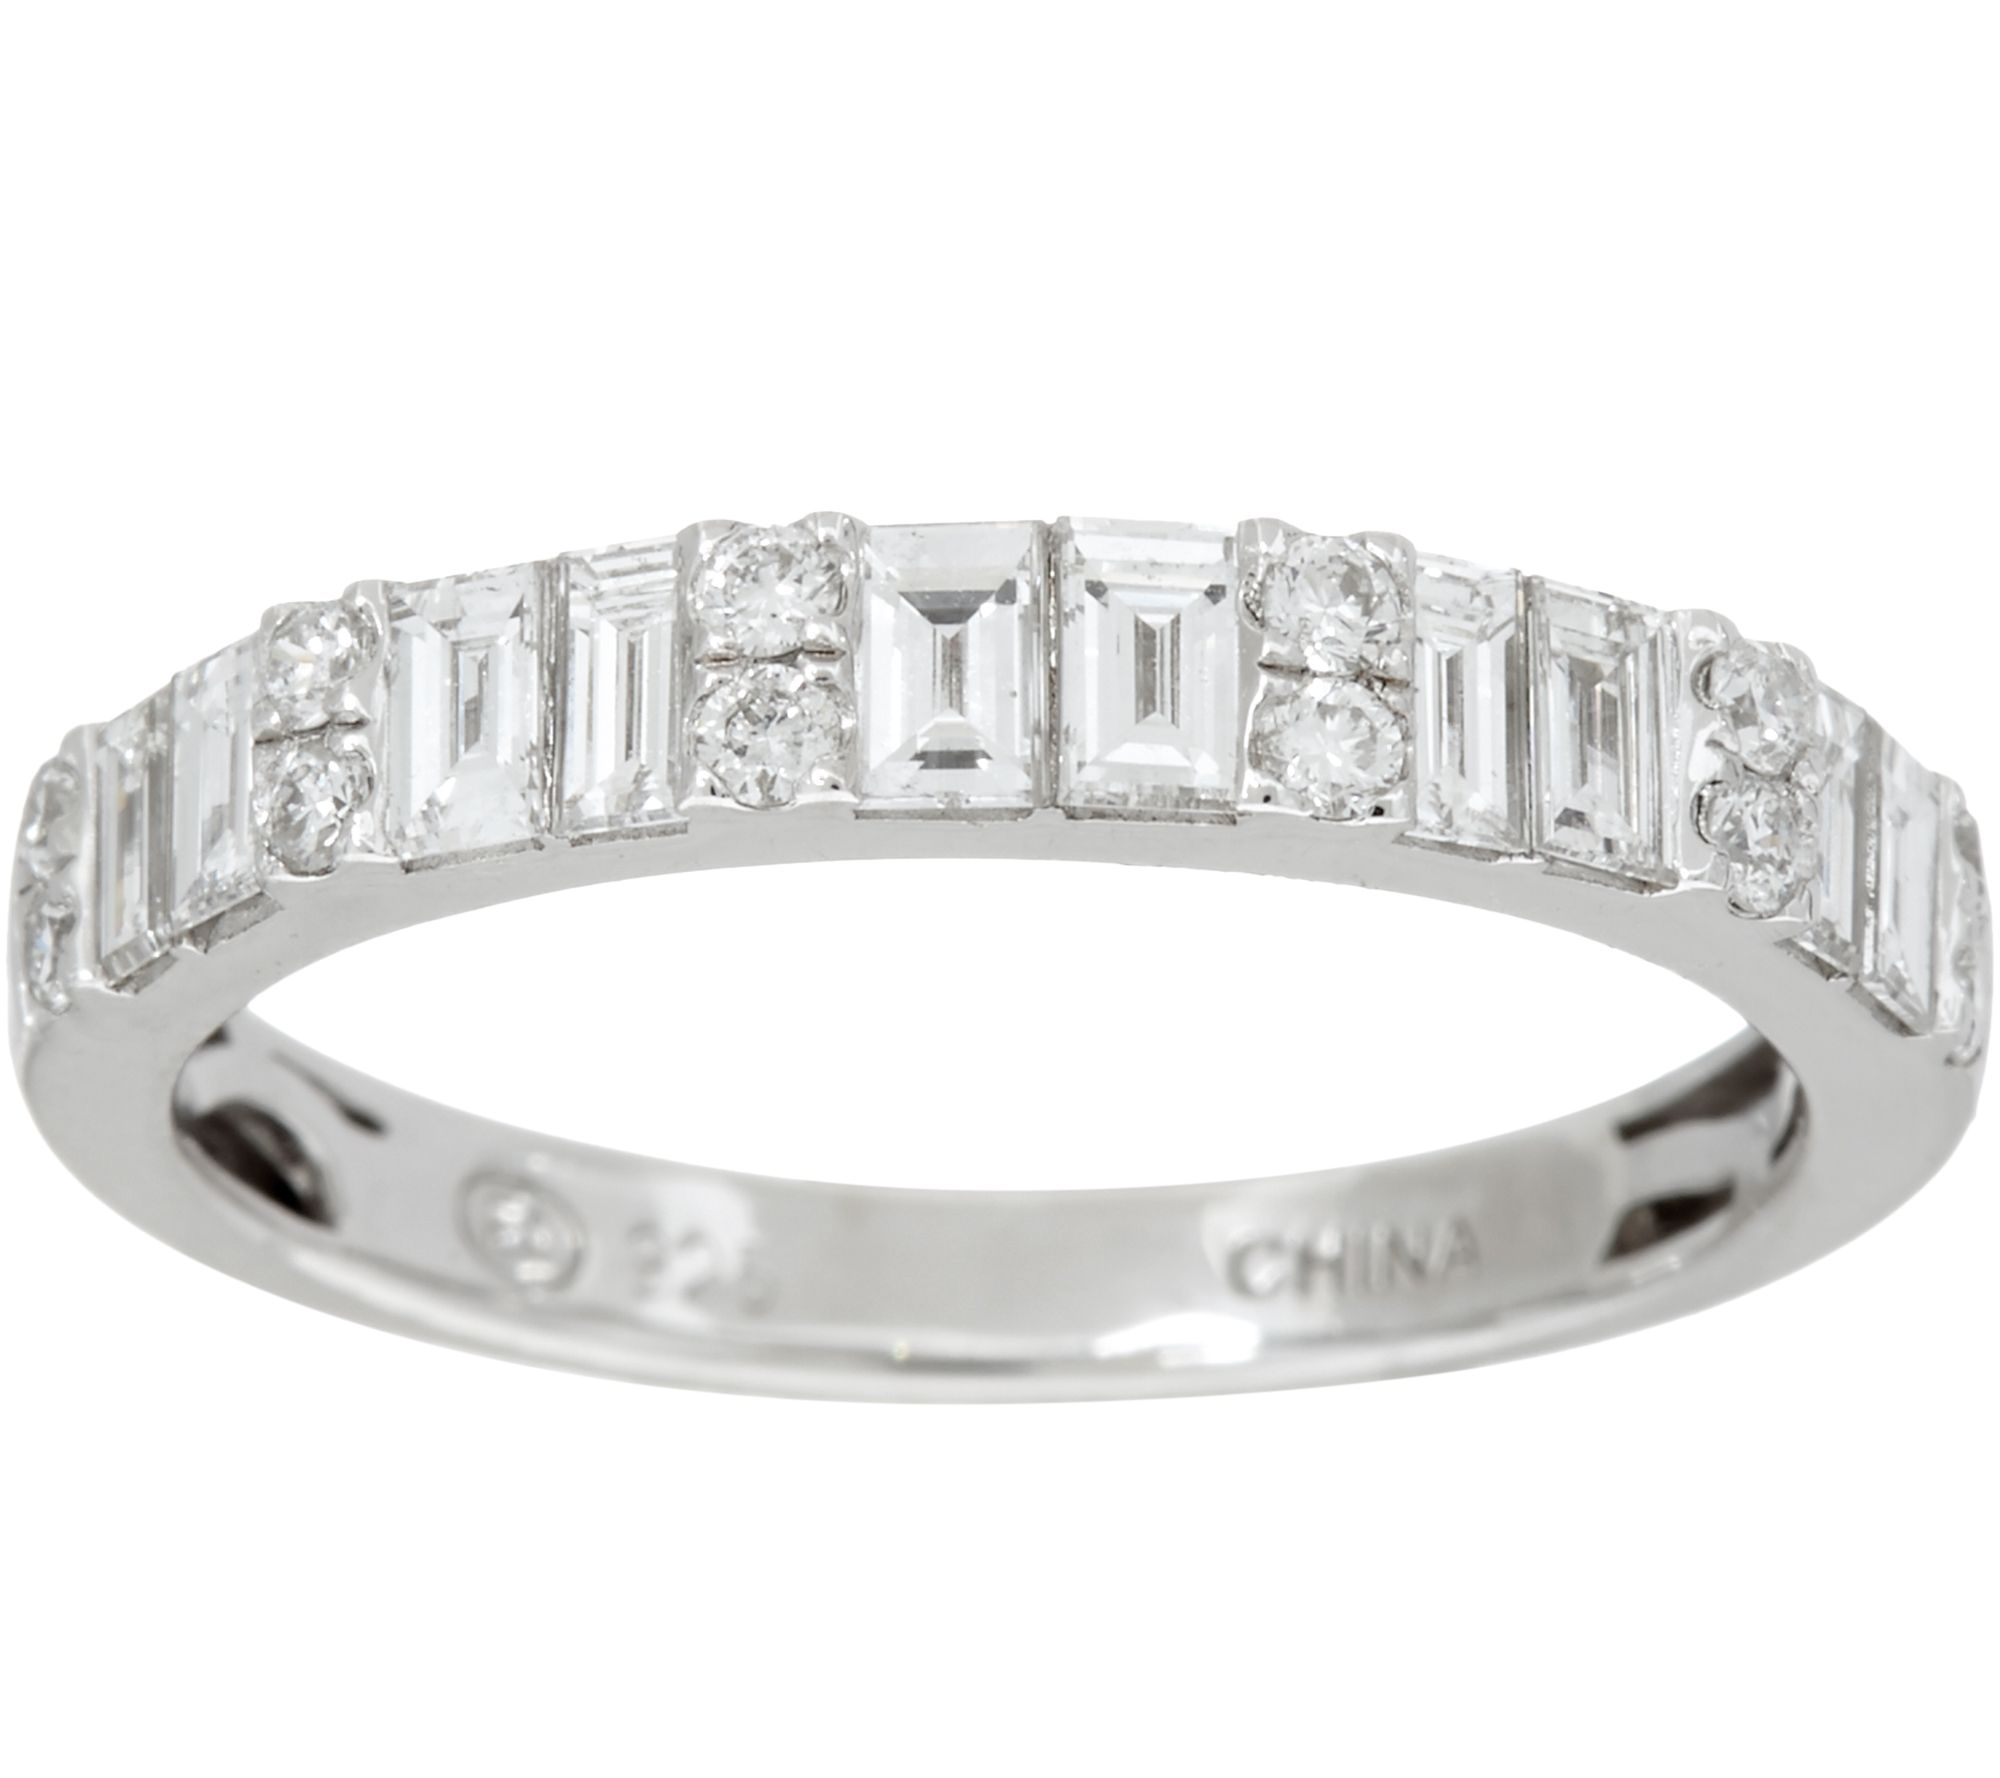 roberts wedding band baguette bands cut product anniversary fairfax diamond